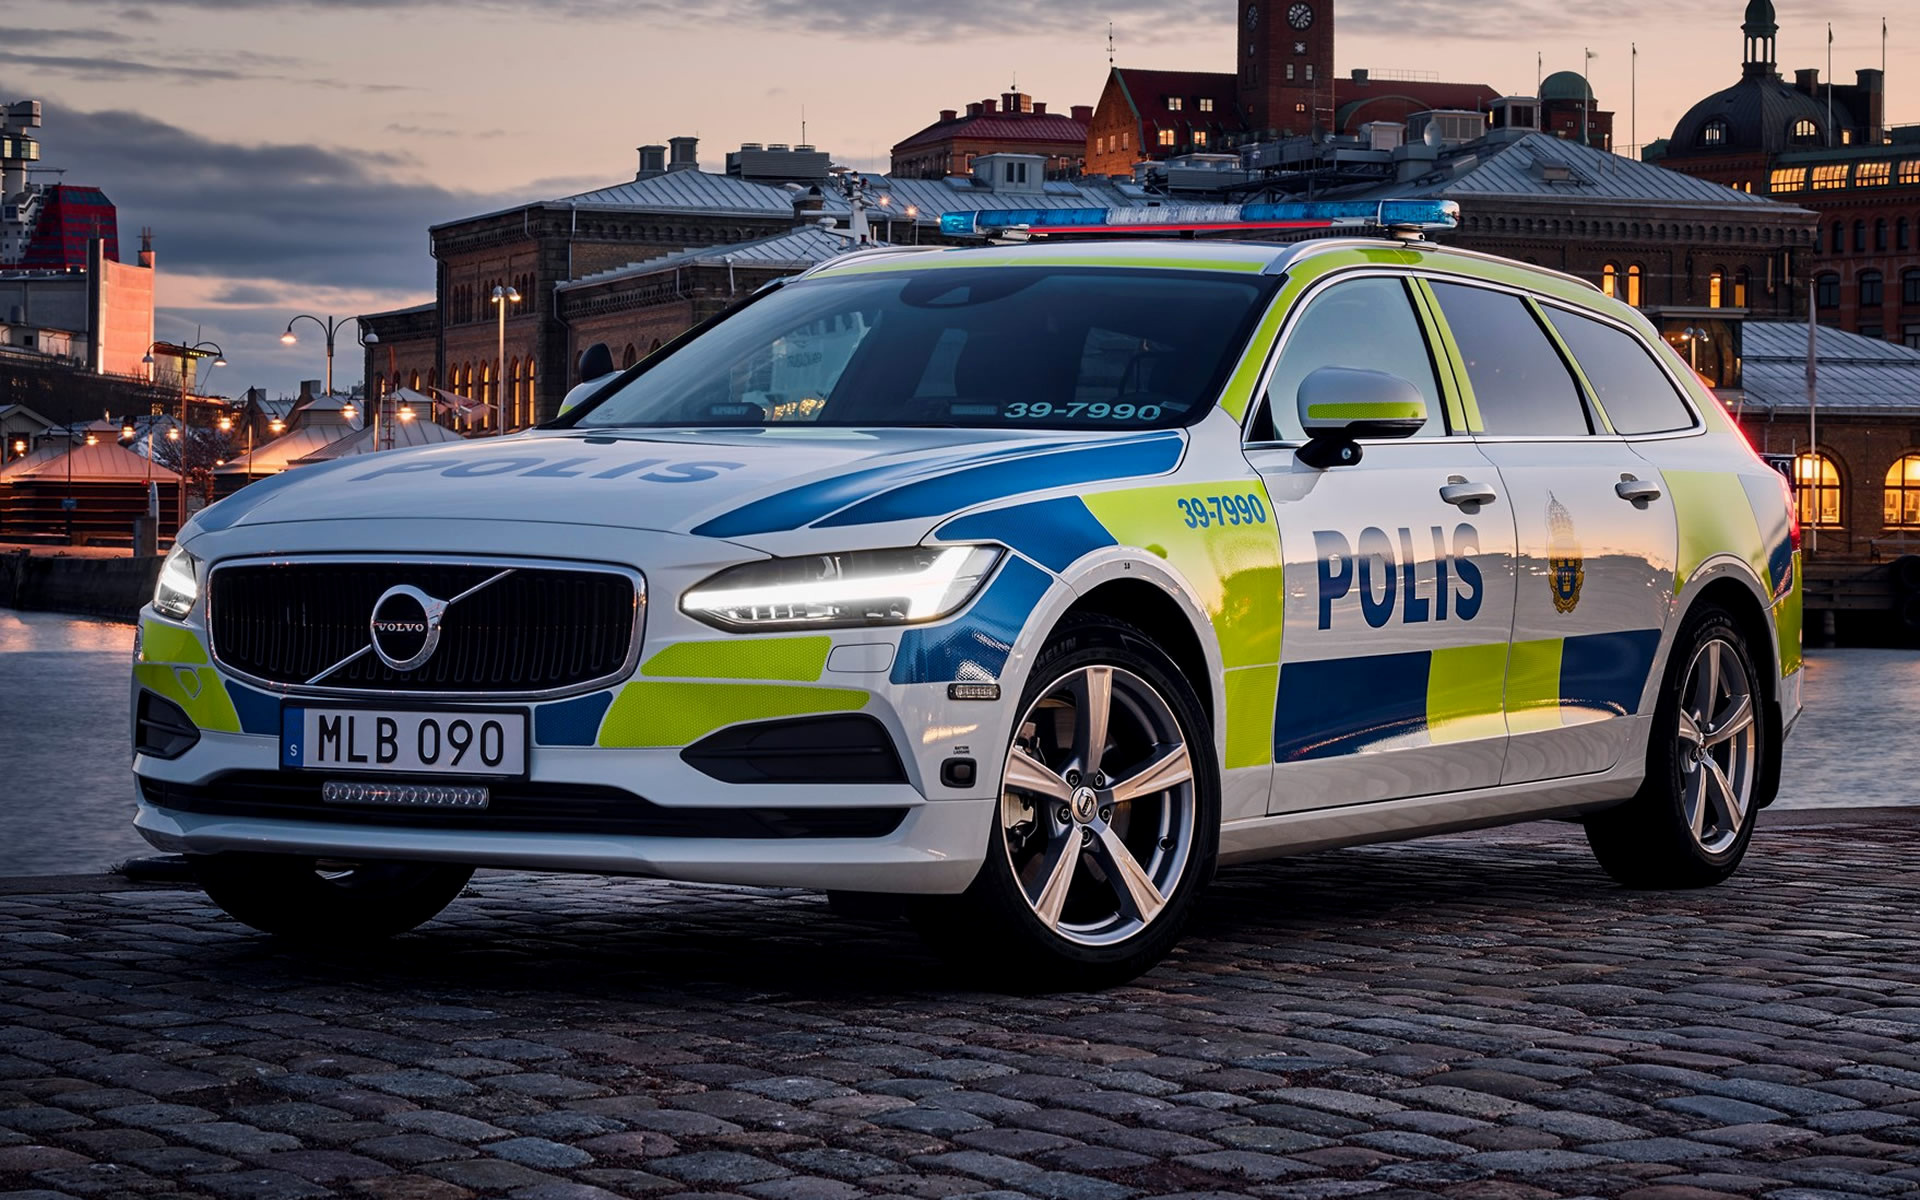 2016 Volvo V90 Polis Wallpapers And Hd Images Car Pixel